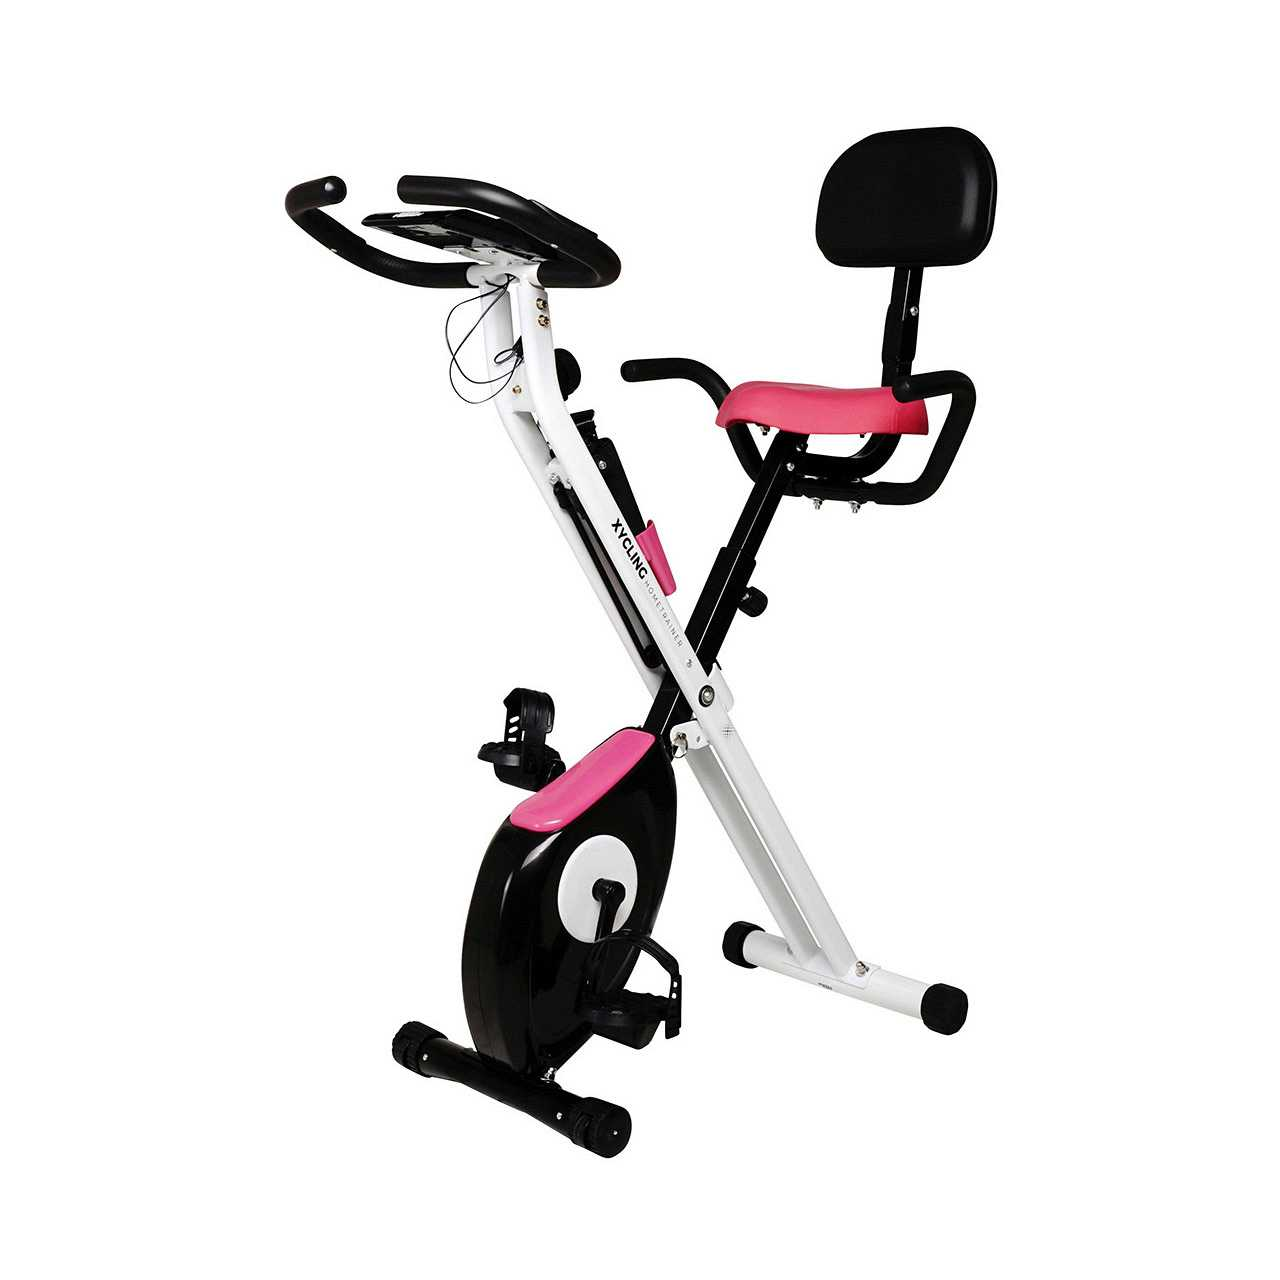 Xycling MX-100 X-Bike Fitnessbike